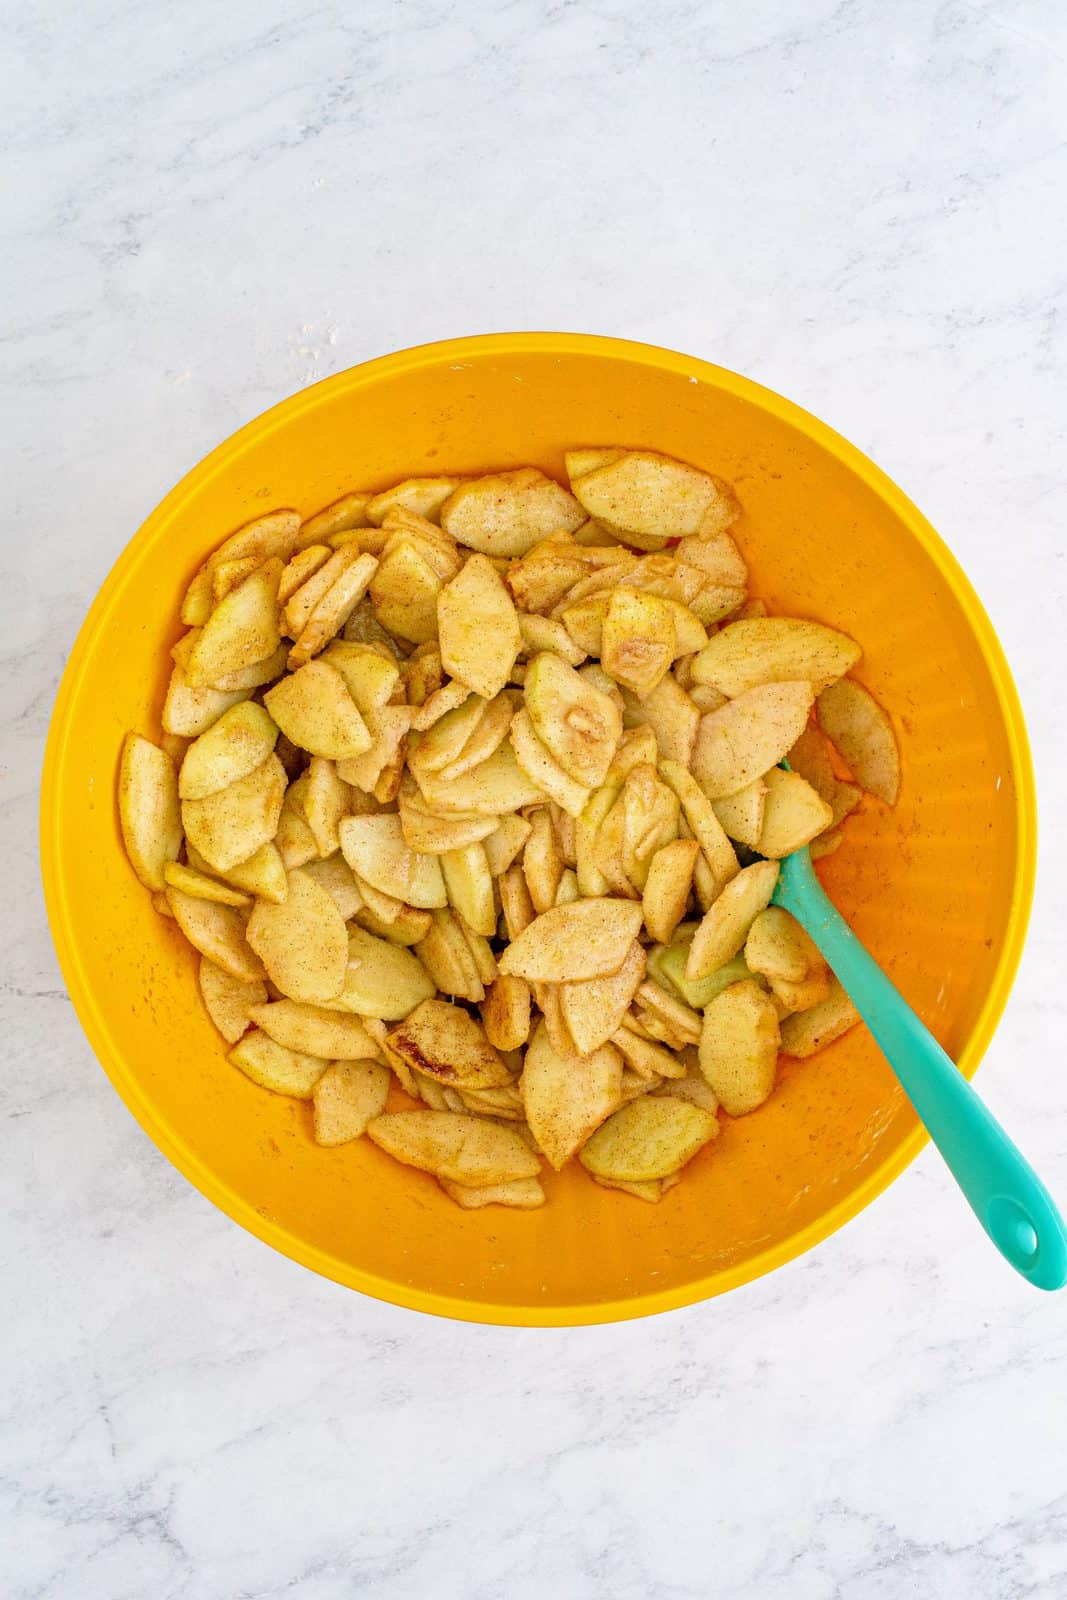 Apple mixture stirred together in bowl.